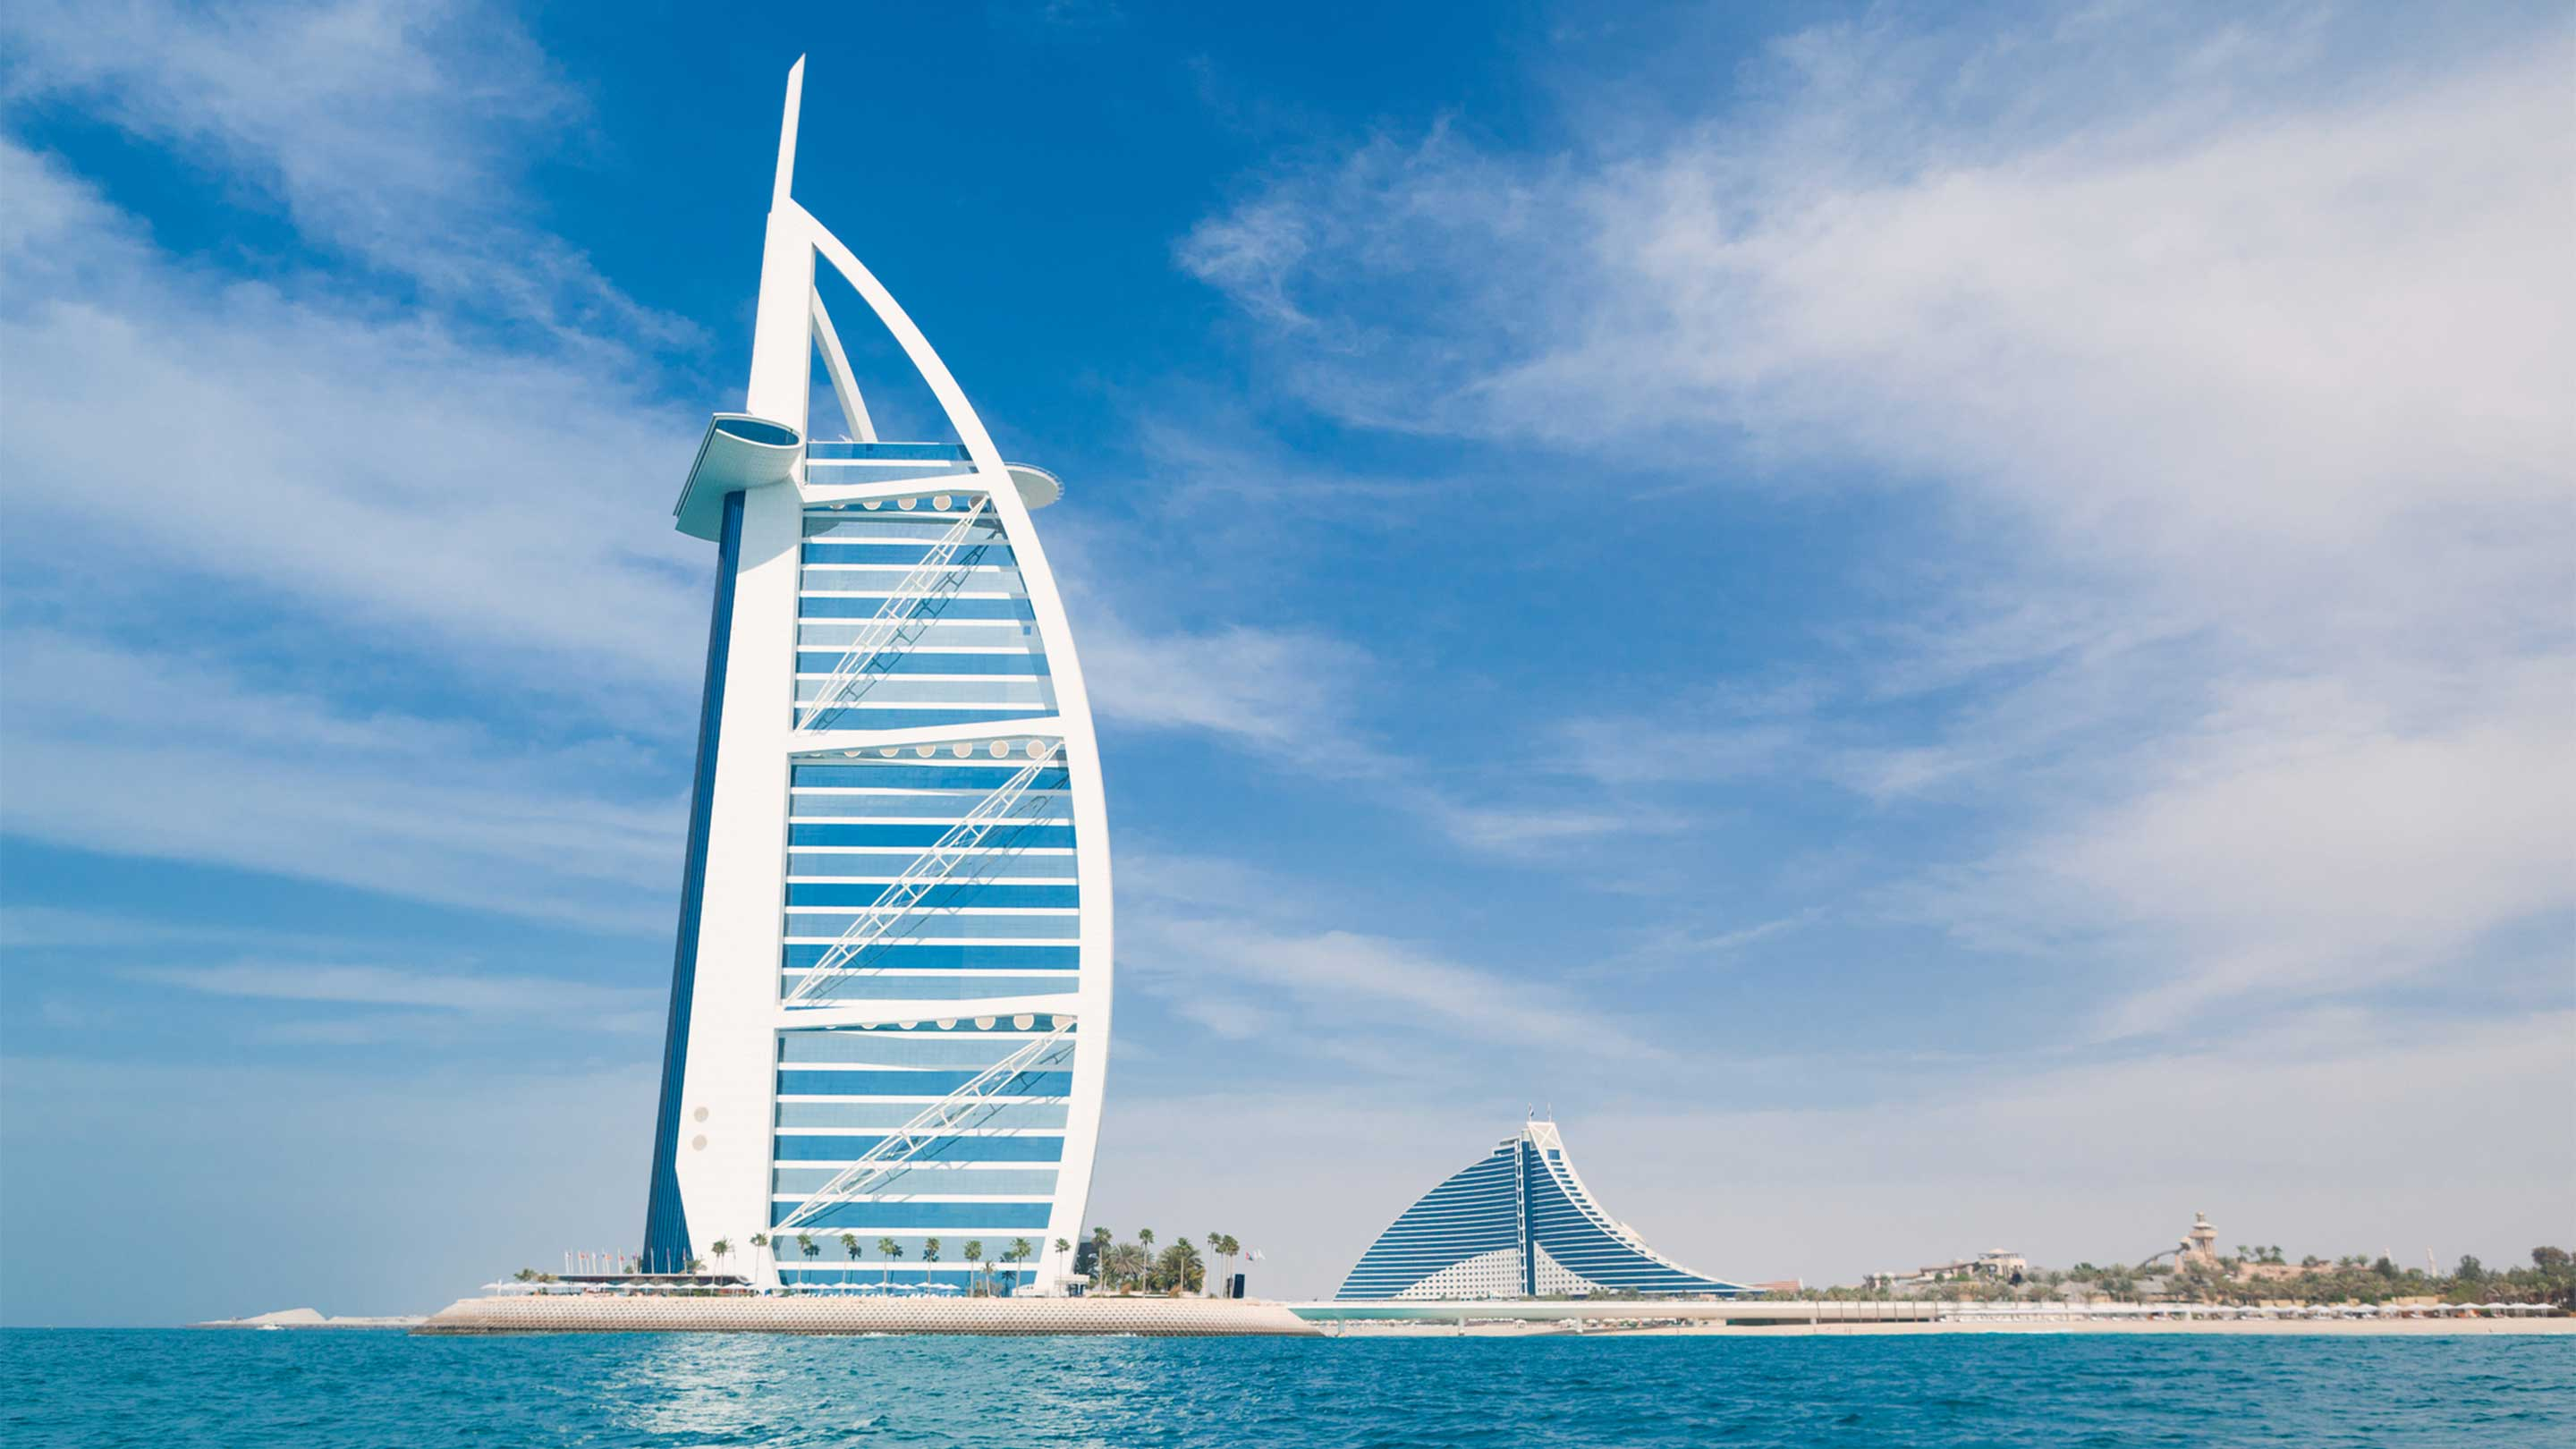 16-9 Photo Copy of Burj Al Arab Hotel in Dubai